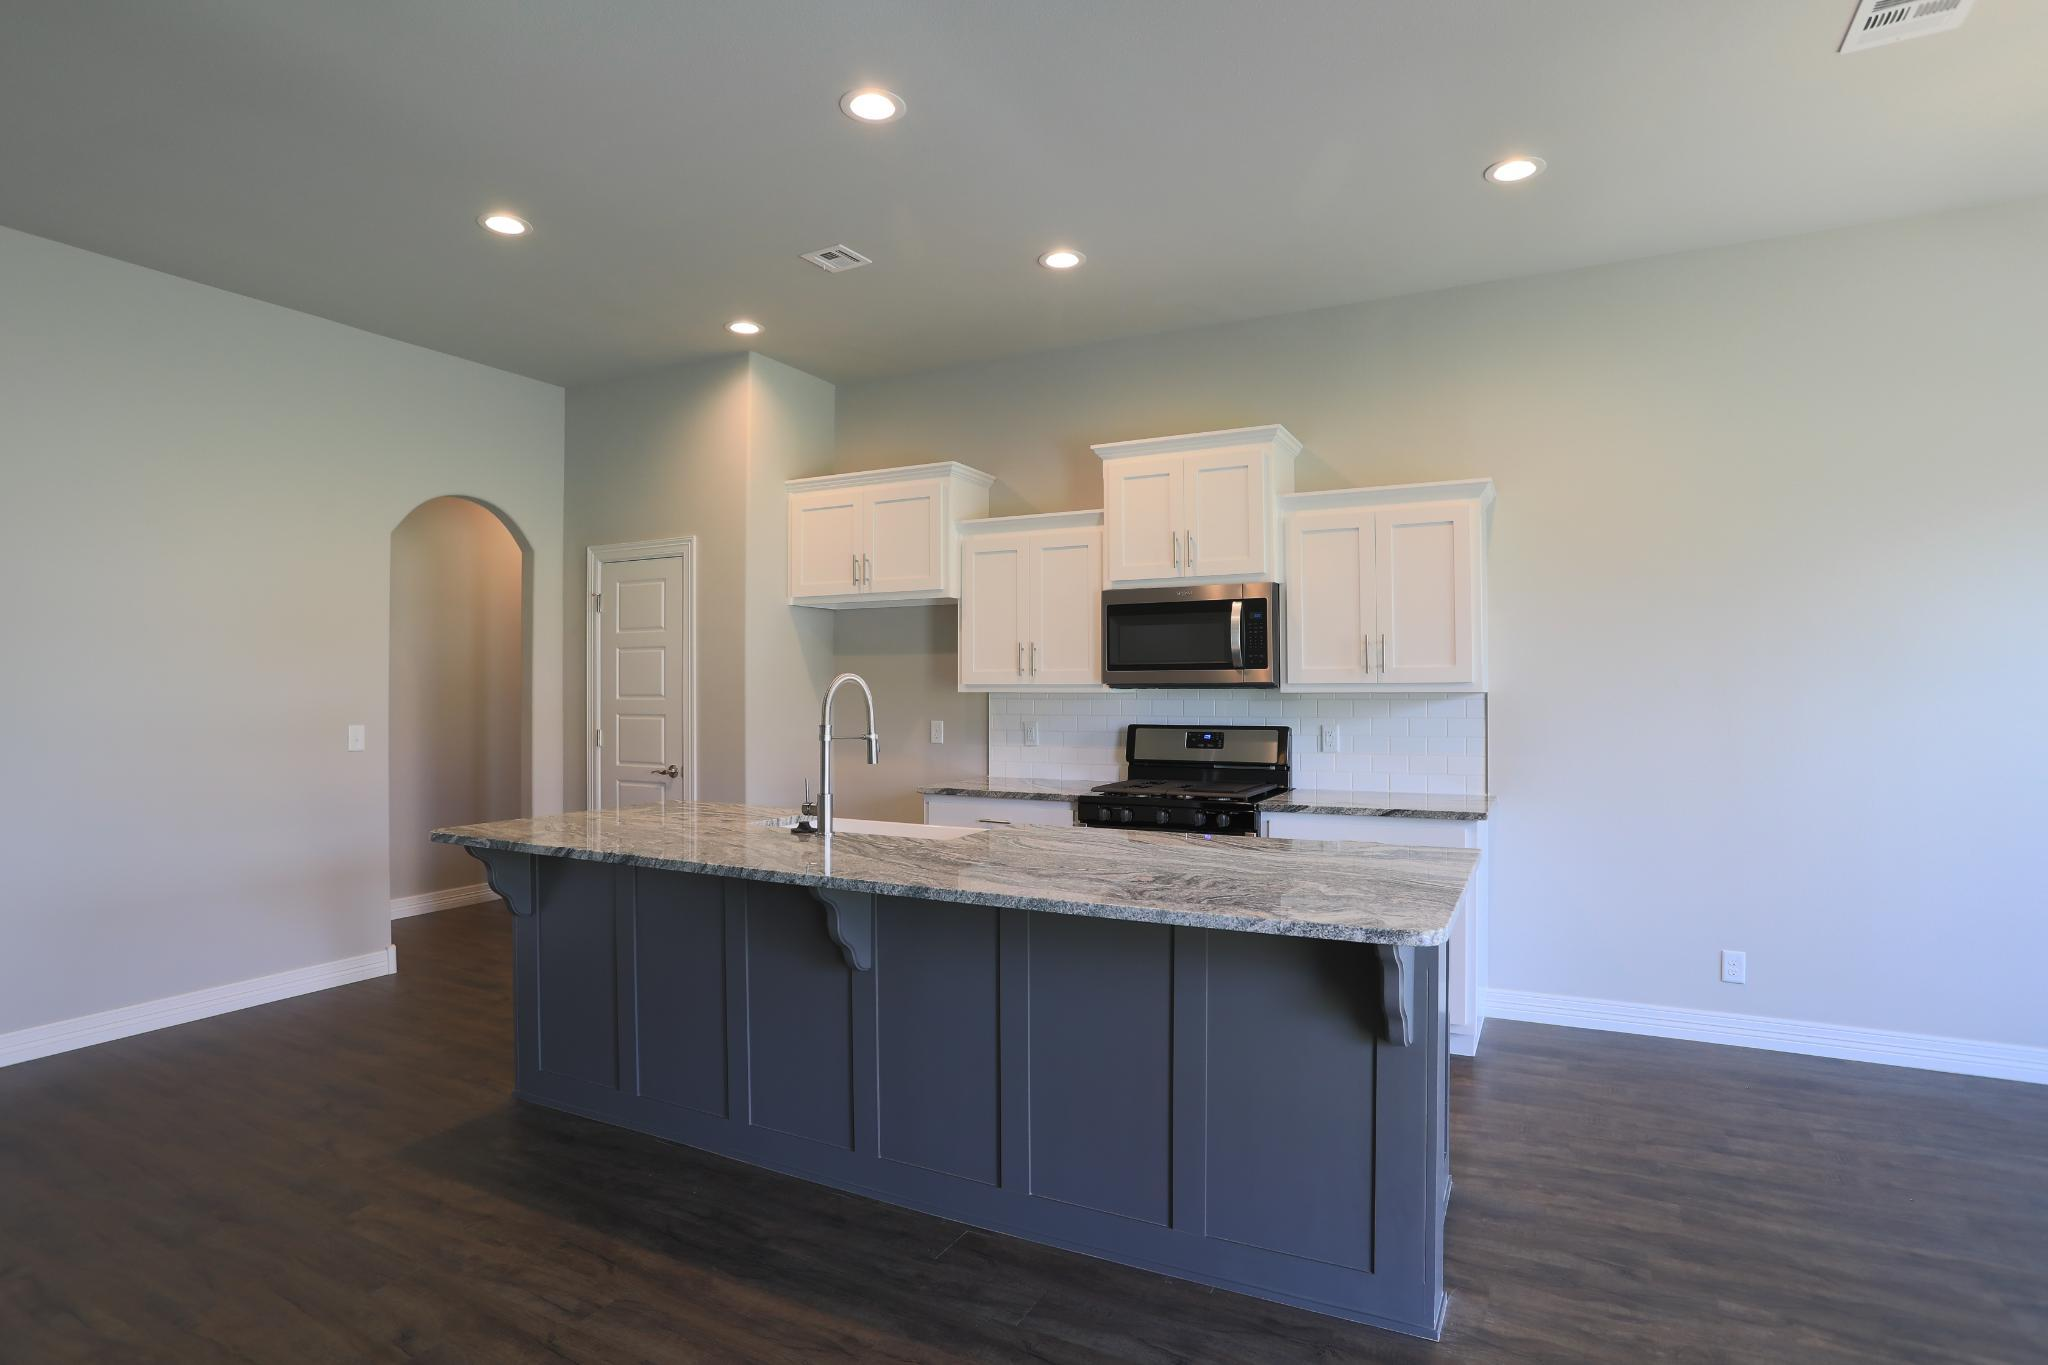 Kitchen featured in the Columbus By Capital Homes in Tulsa, OK